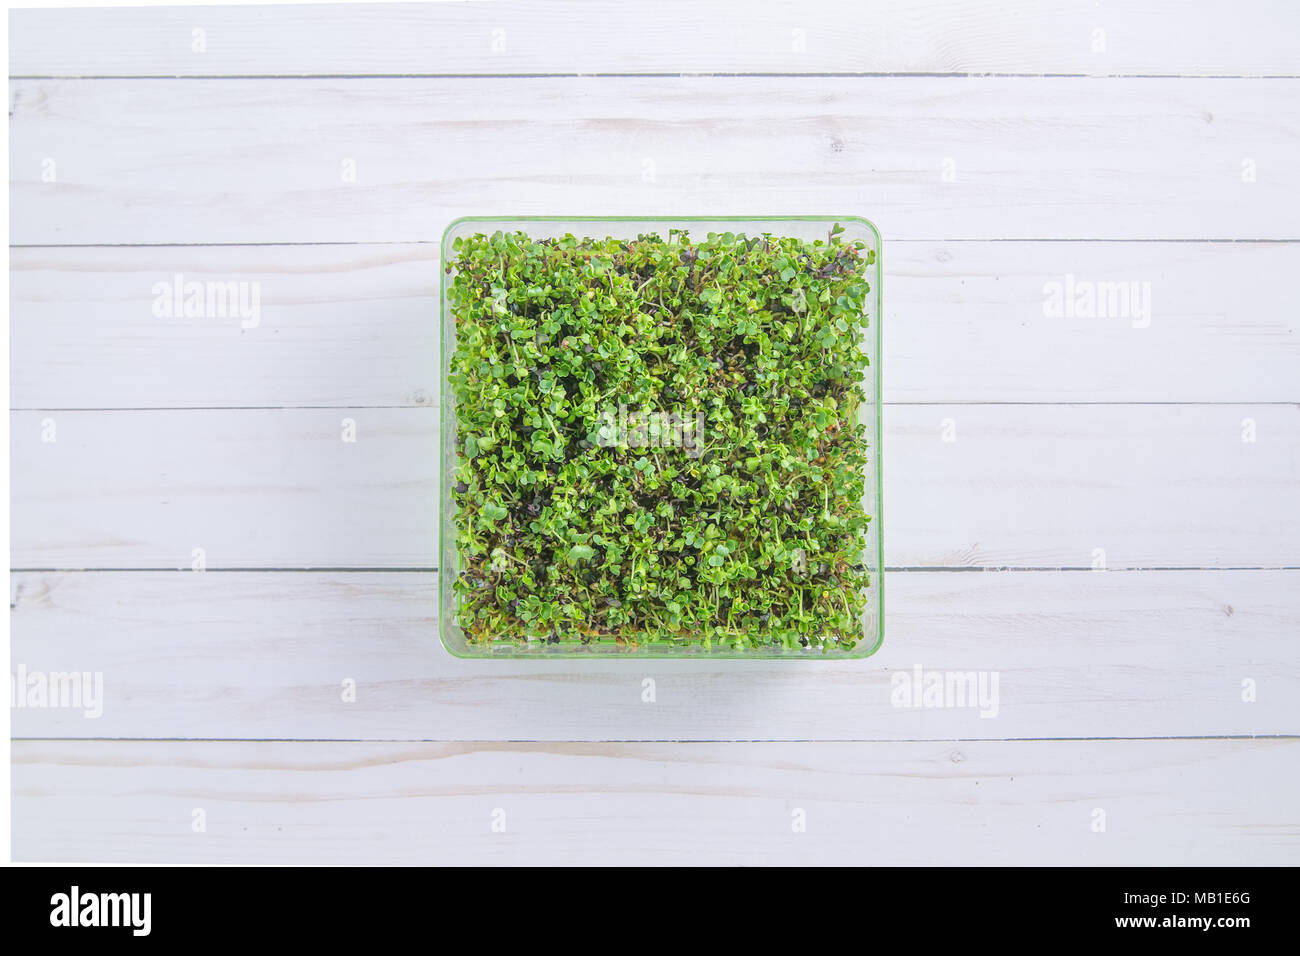 Tray of fresh microgreen sprouts on a white wood background Stock Photo